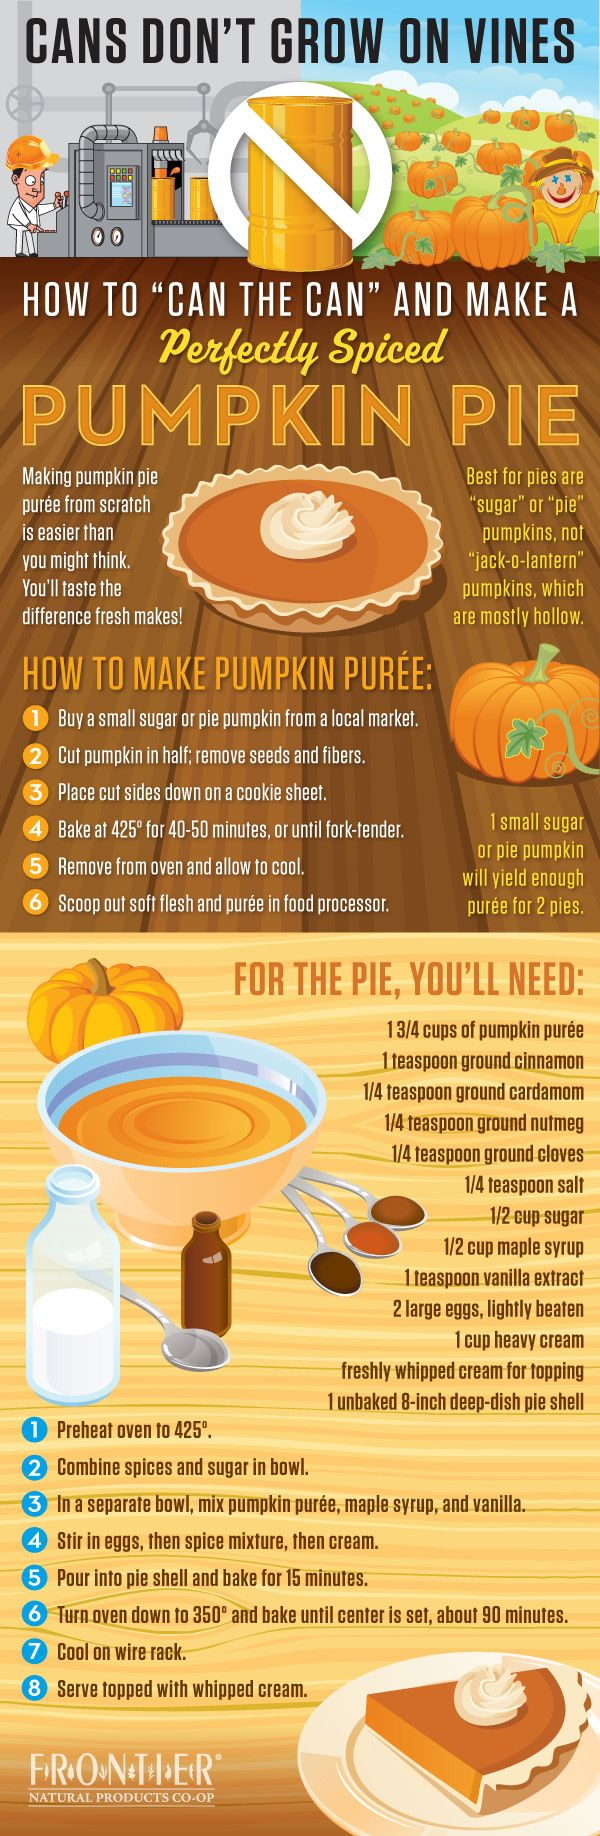 How to make a pumpkin pie from scratch [Infographic] - Richmond Times-Dispatch: Food, Recipes & Entertaining: